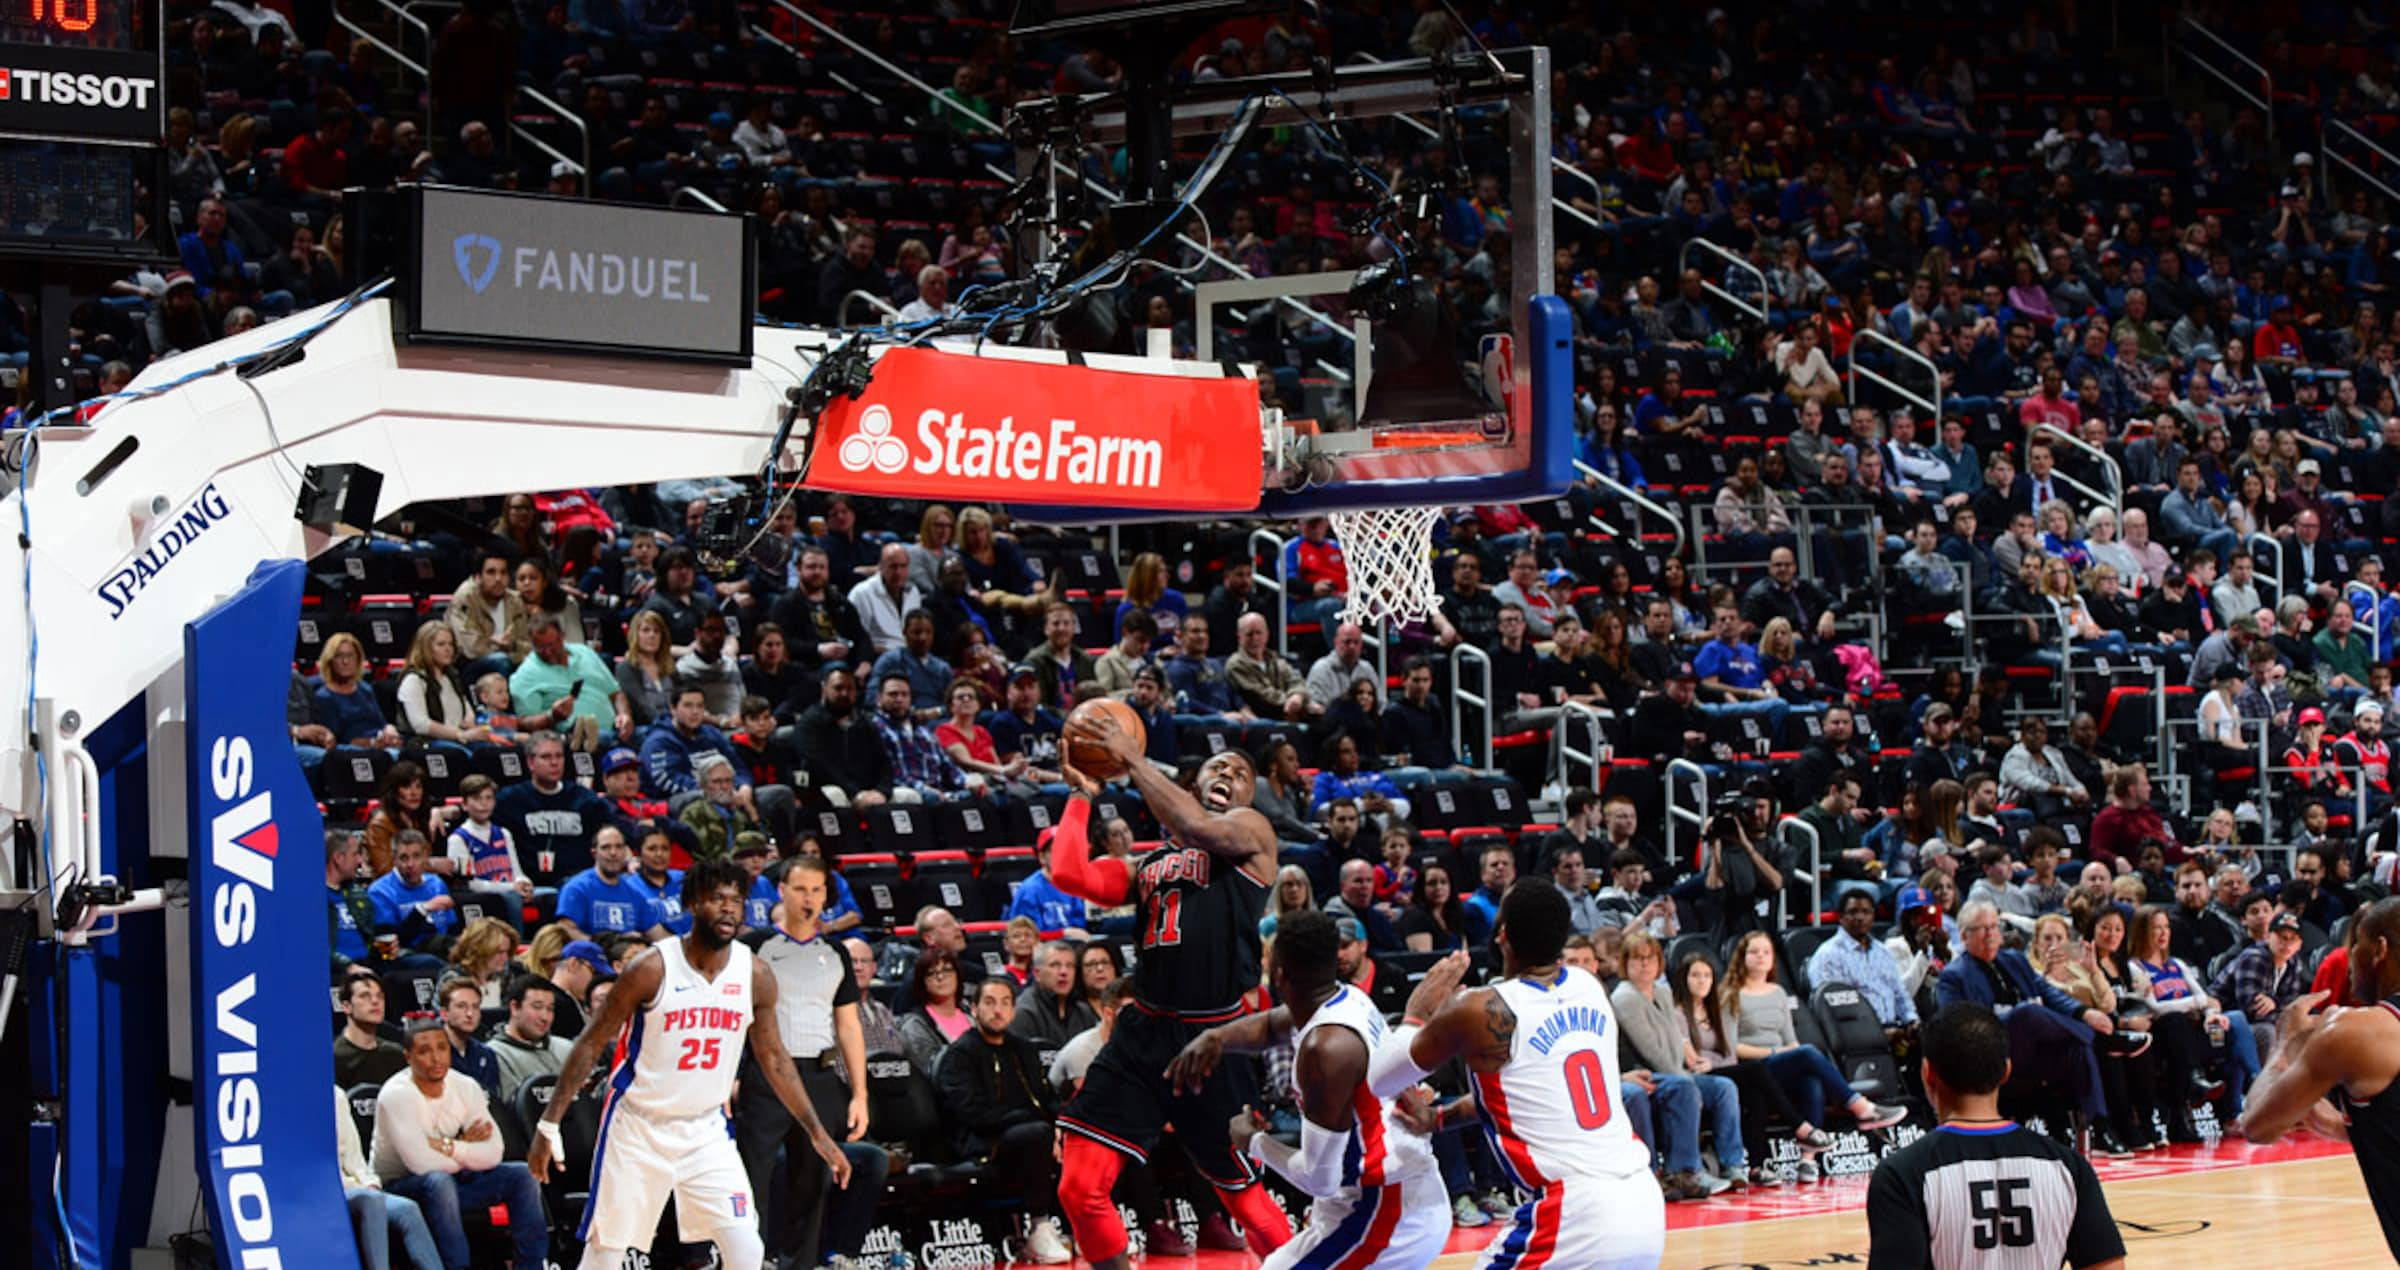 David Nwaba #11 of the Chicago Bulls drives to the basket against the Detroit Pistons on March 24, 2018 at Little Caesars Arena in Auburn Hills, Michigan.